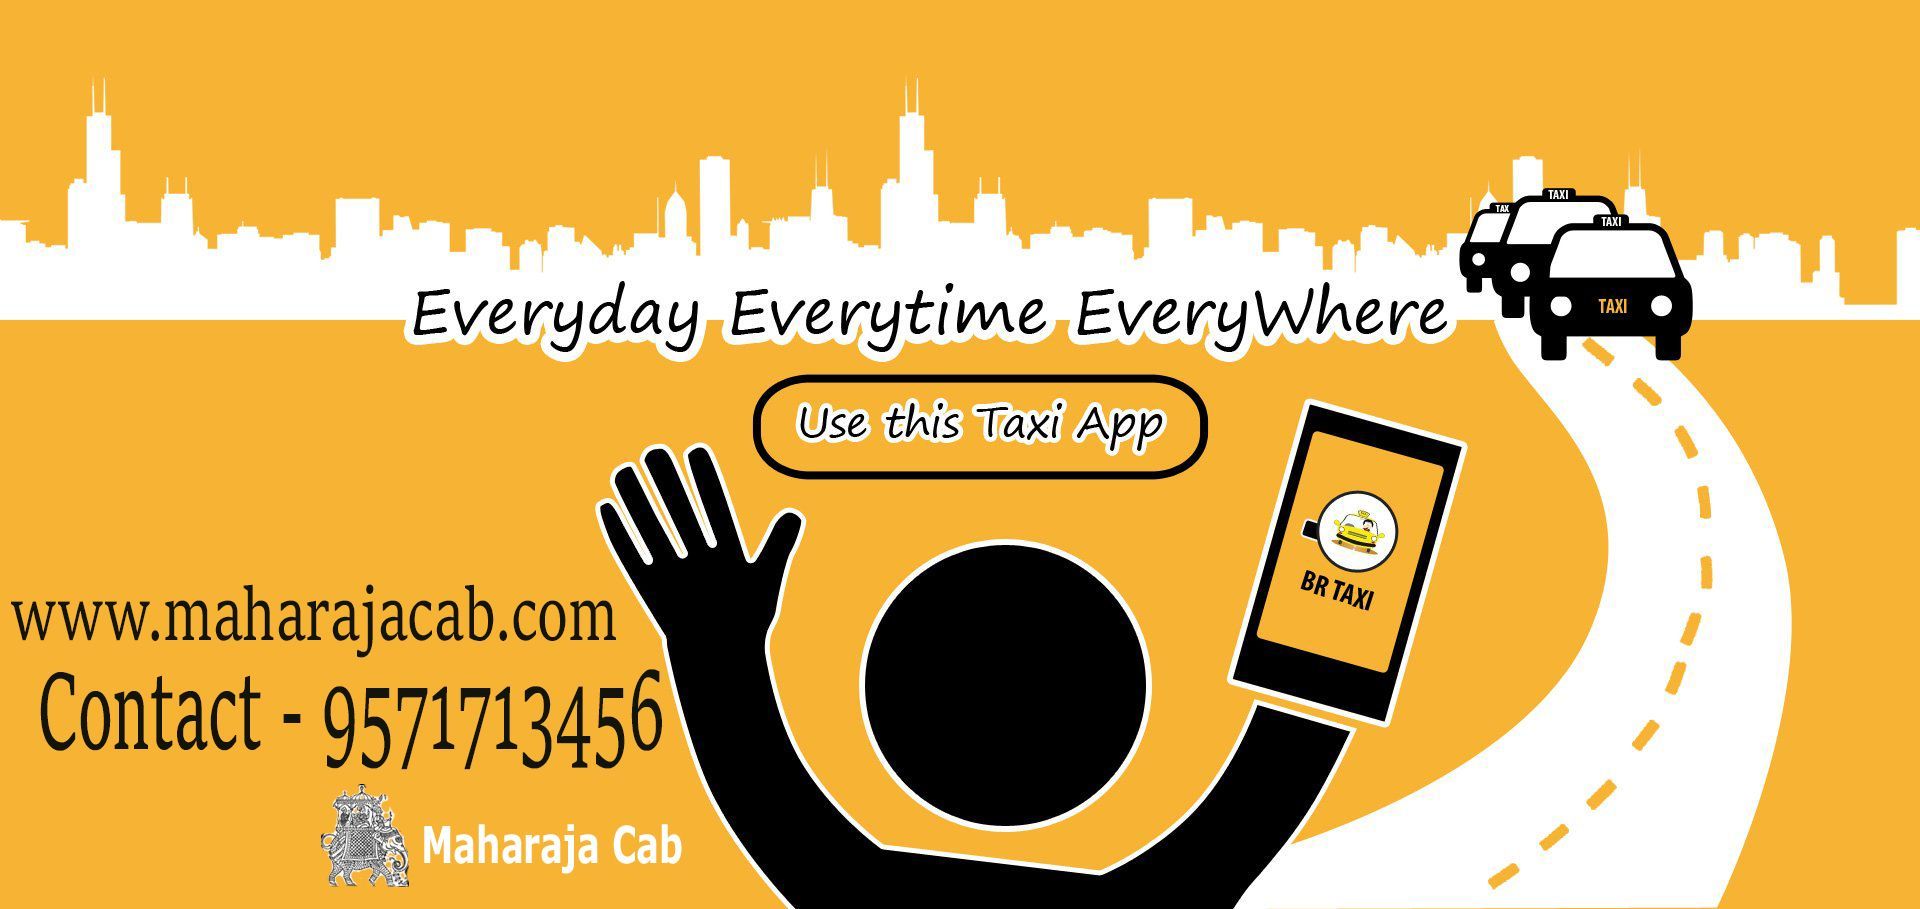 Taxi Service in Jaipur, Book your taxi for tourist purpose